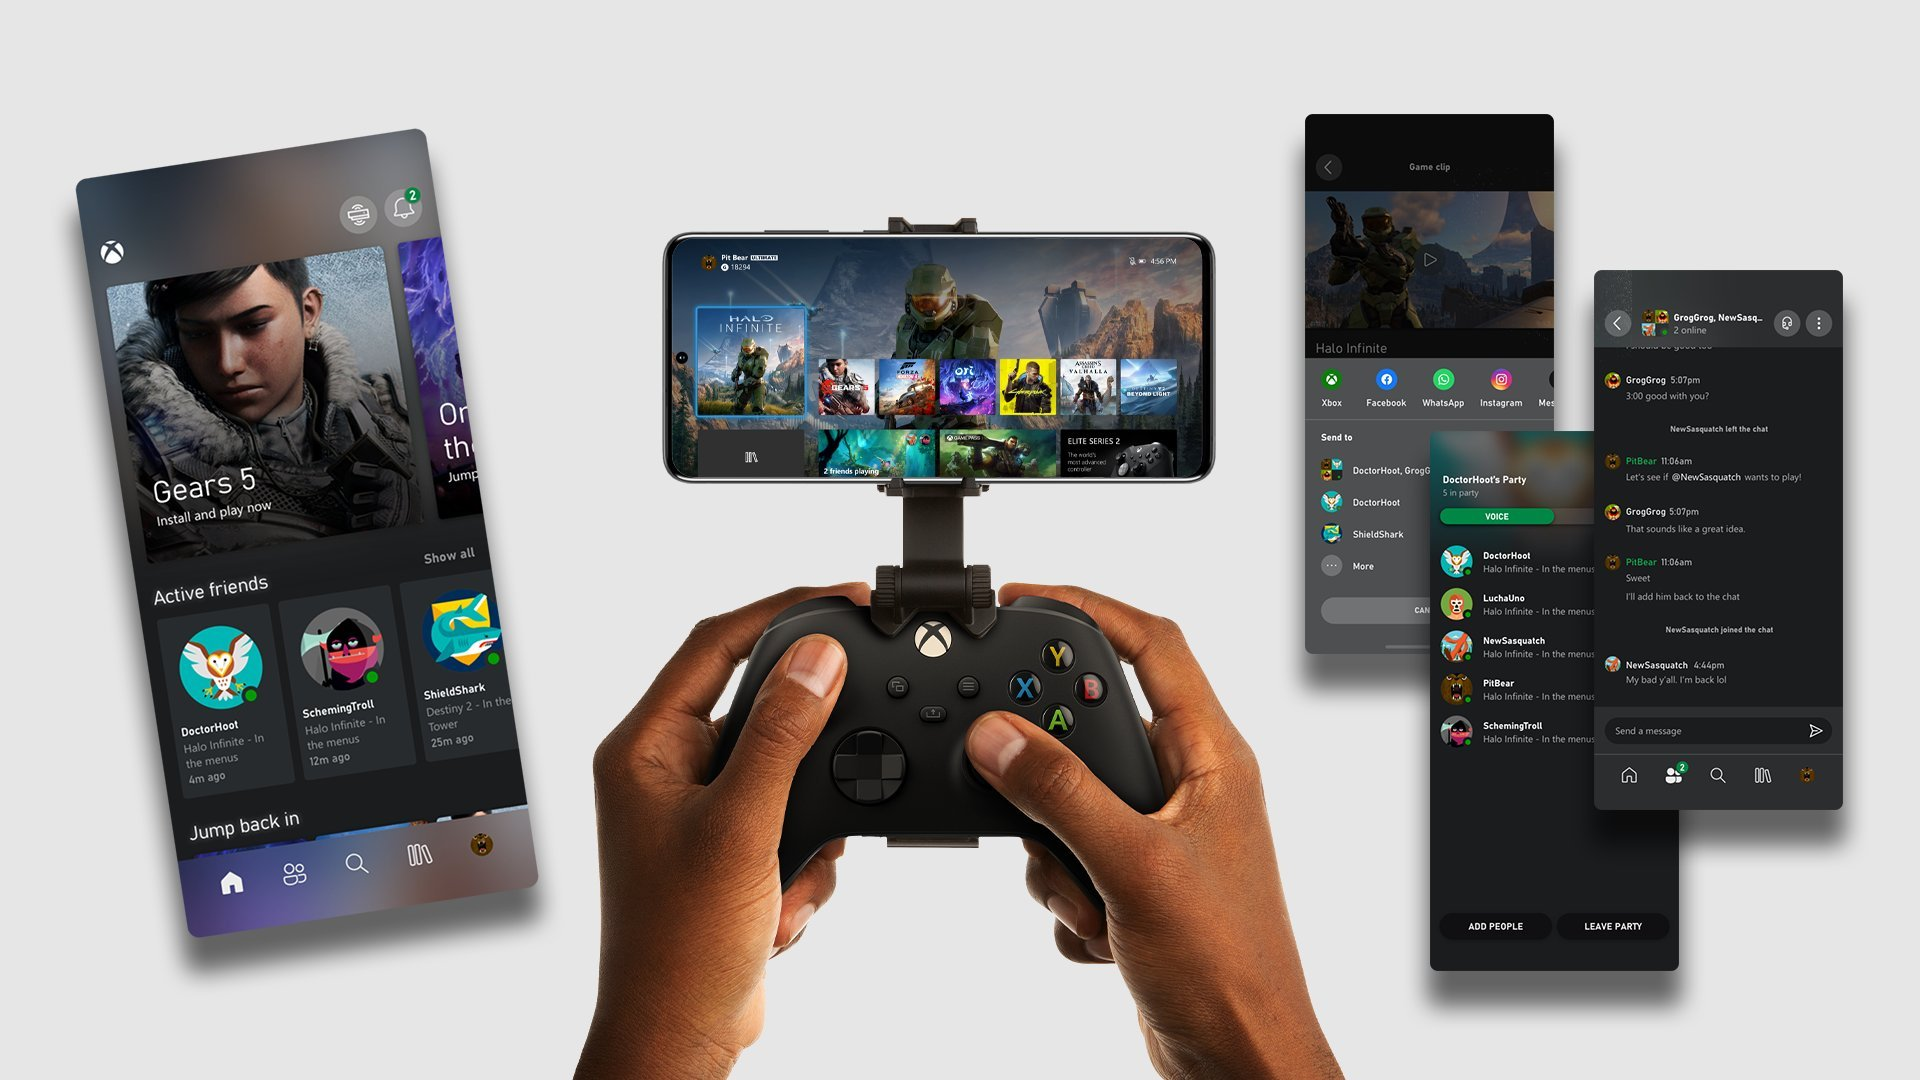 New Xbox App on Android allows for remote play